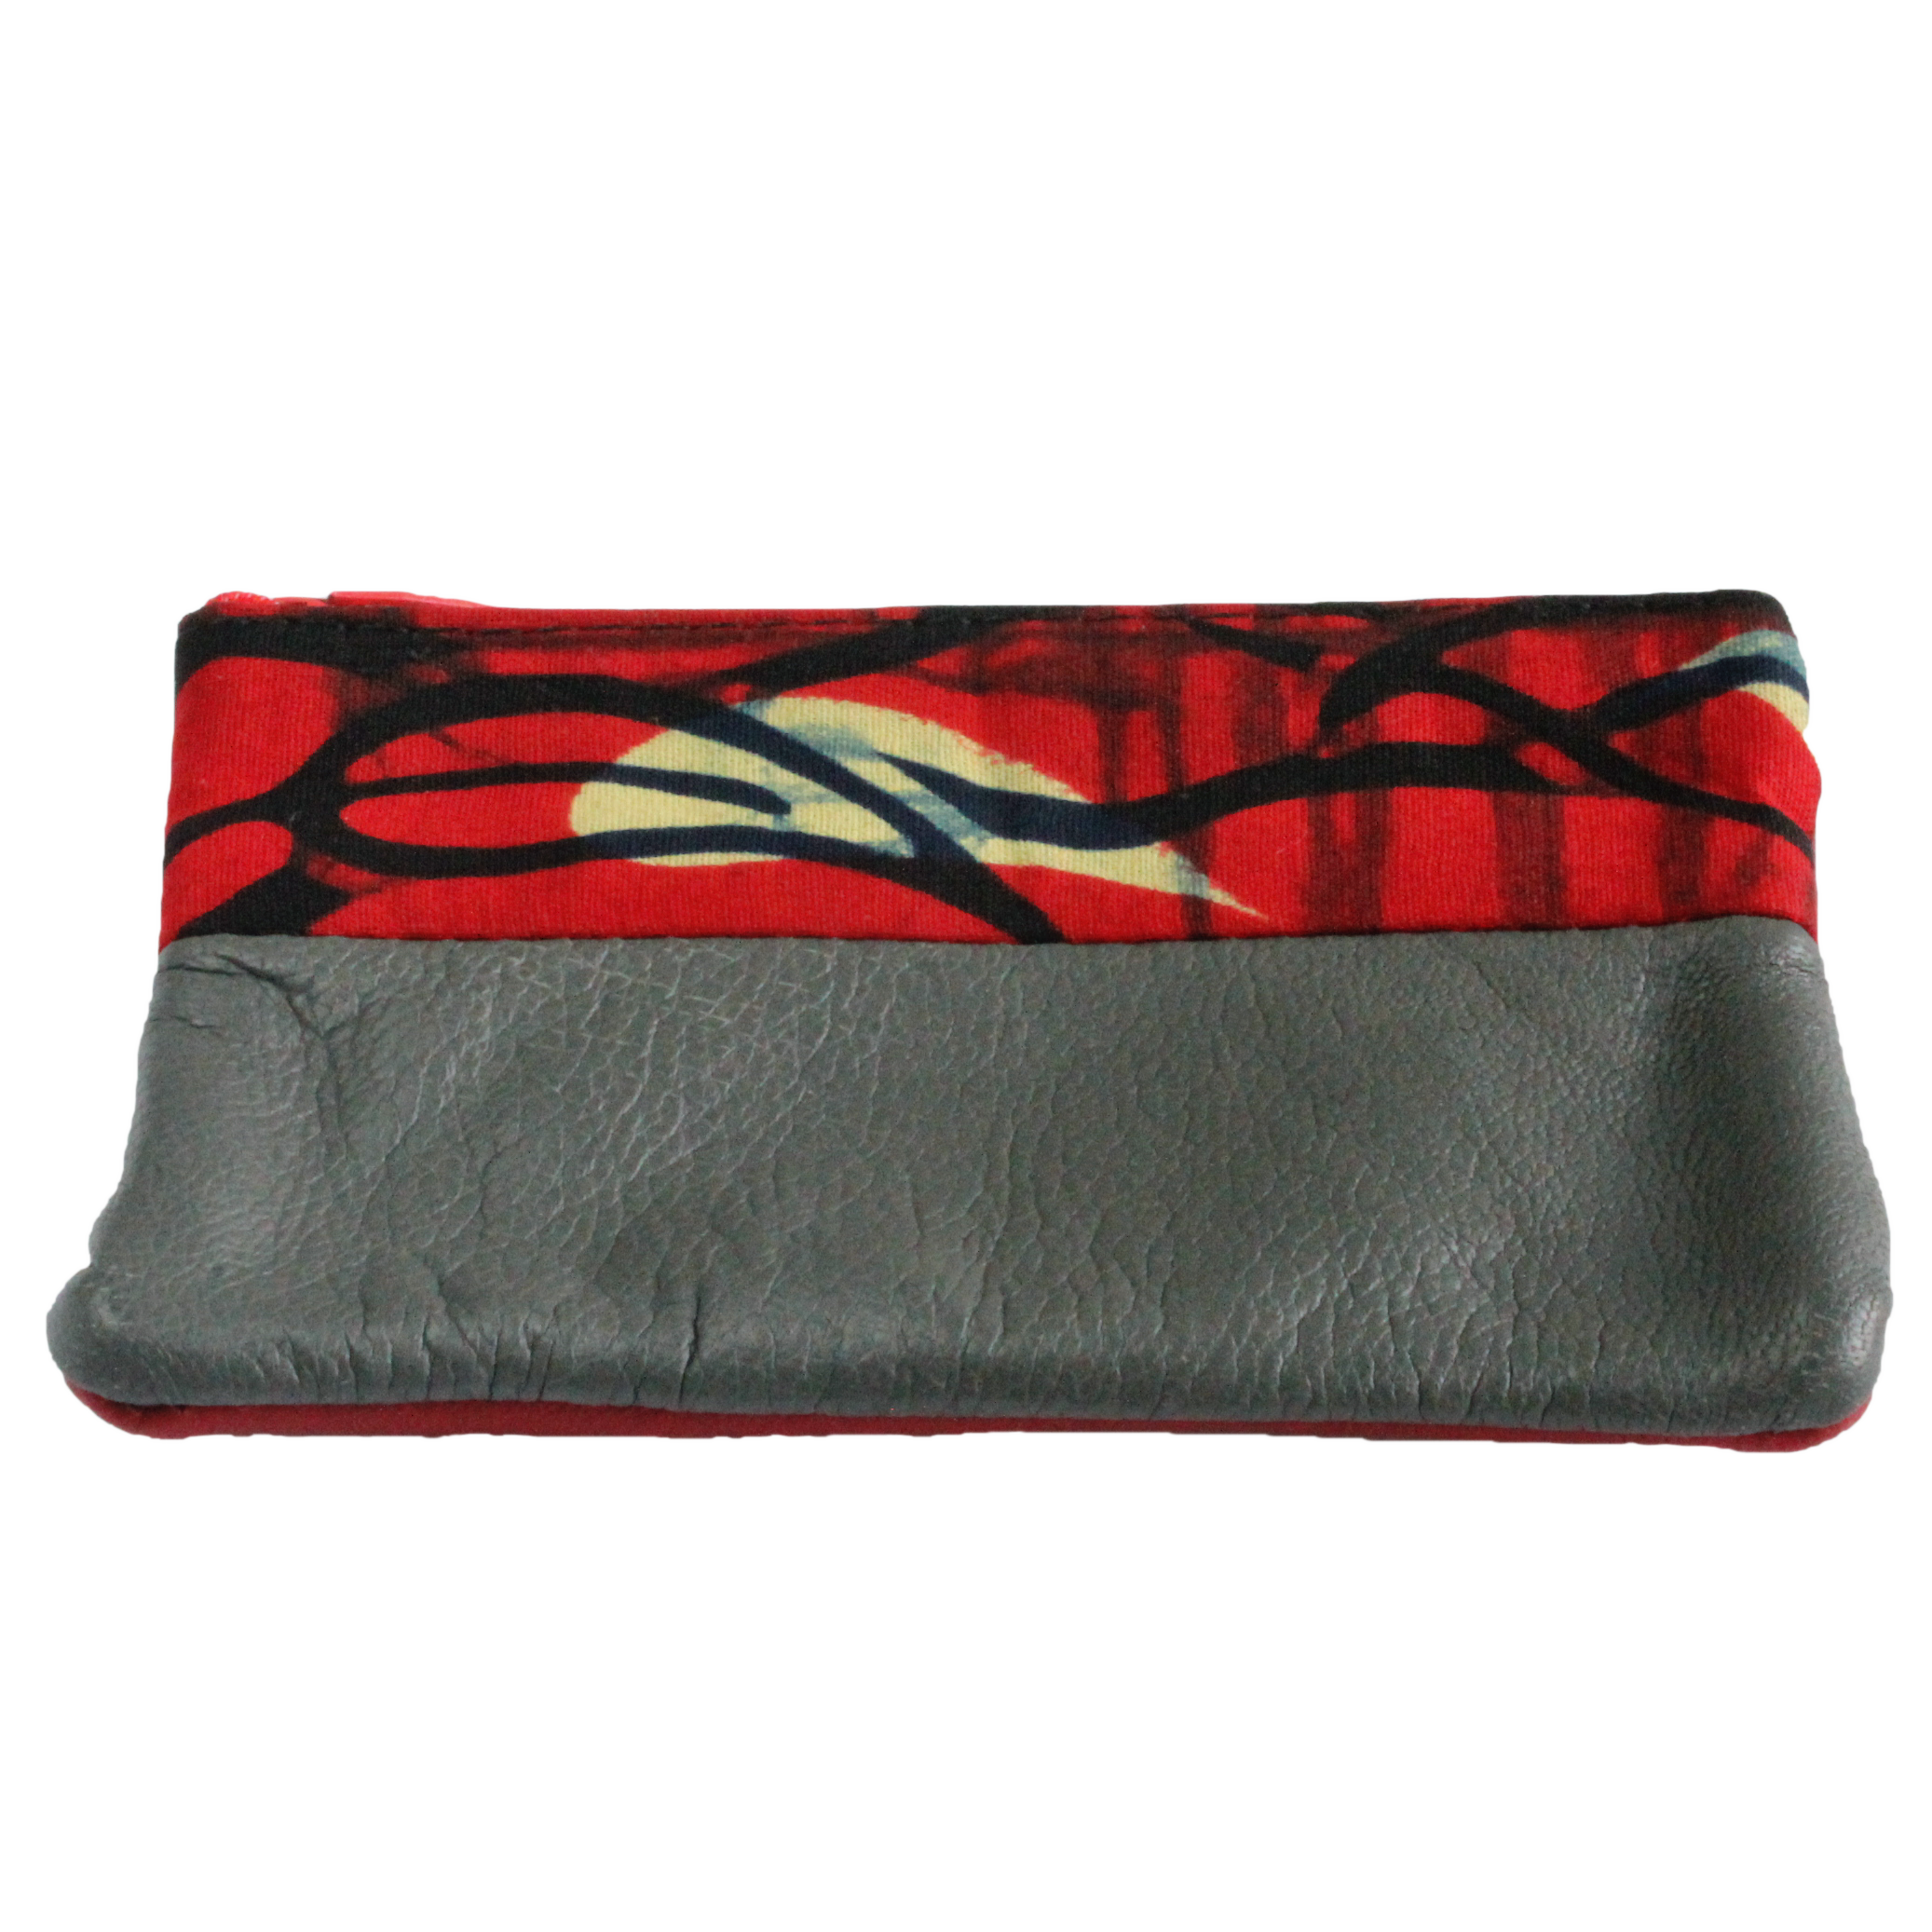 Handmade African coin purse, upcycled leather, African print, Kitenge fashion, Ankara fashion, red, grey, front